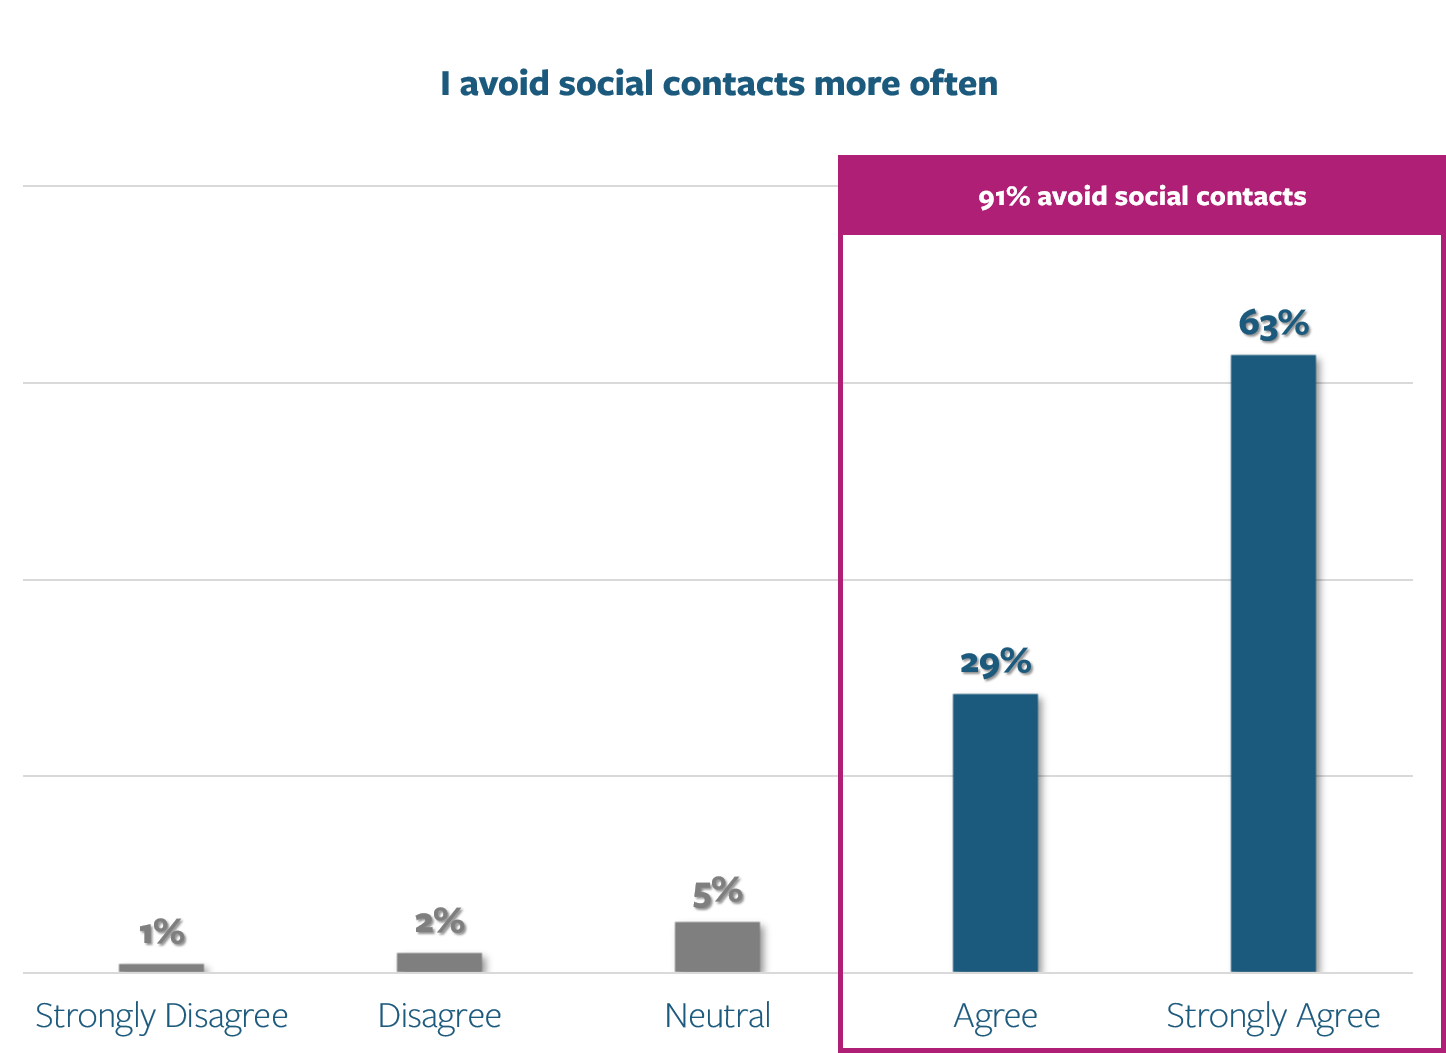 Patient Survey - I avoid social contacts